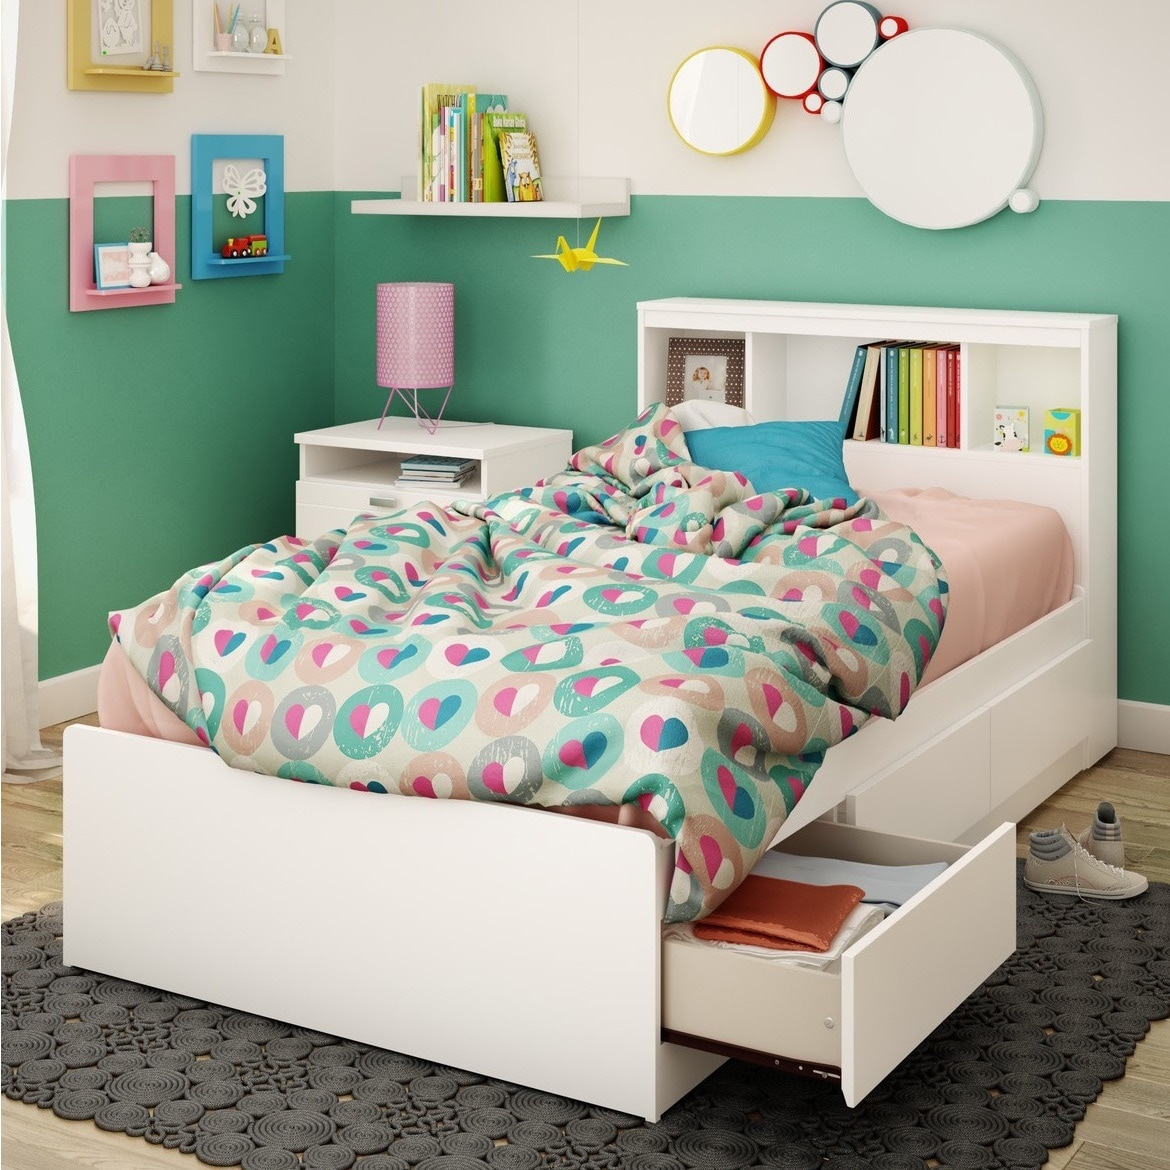 South Shore Reevo Mates Pure White 39 Inch Twin Bed With Bookcase Headboard